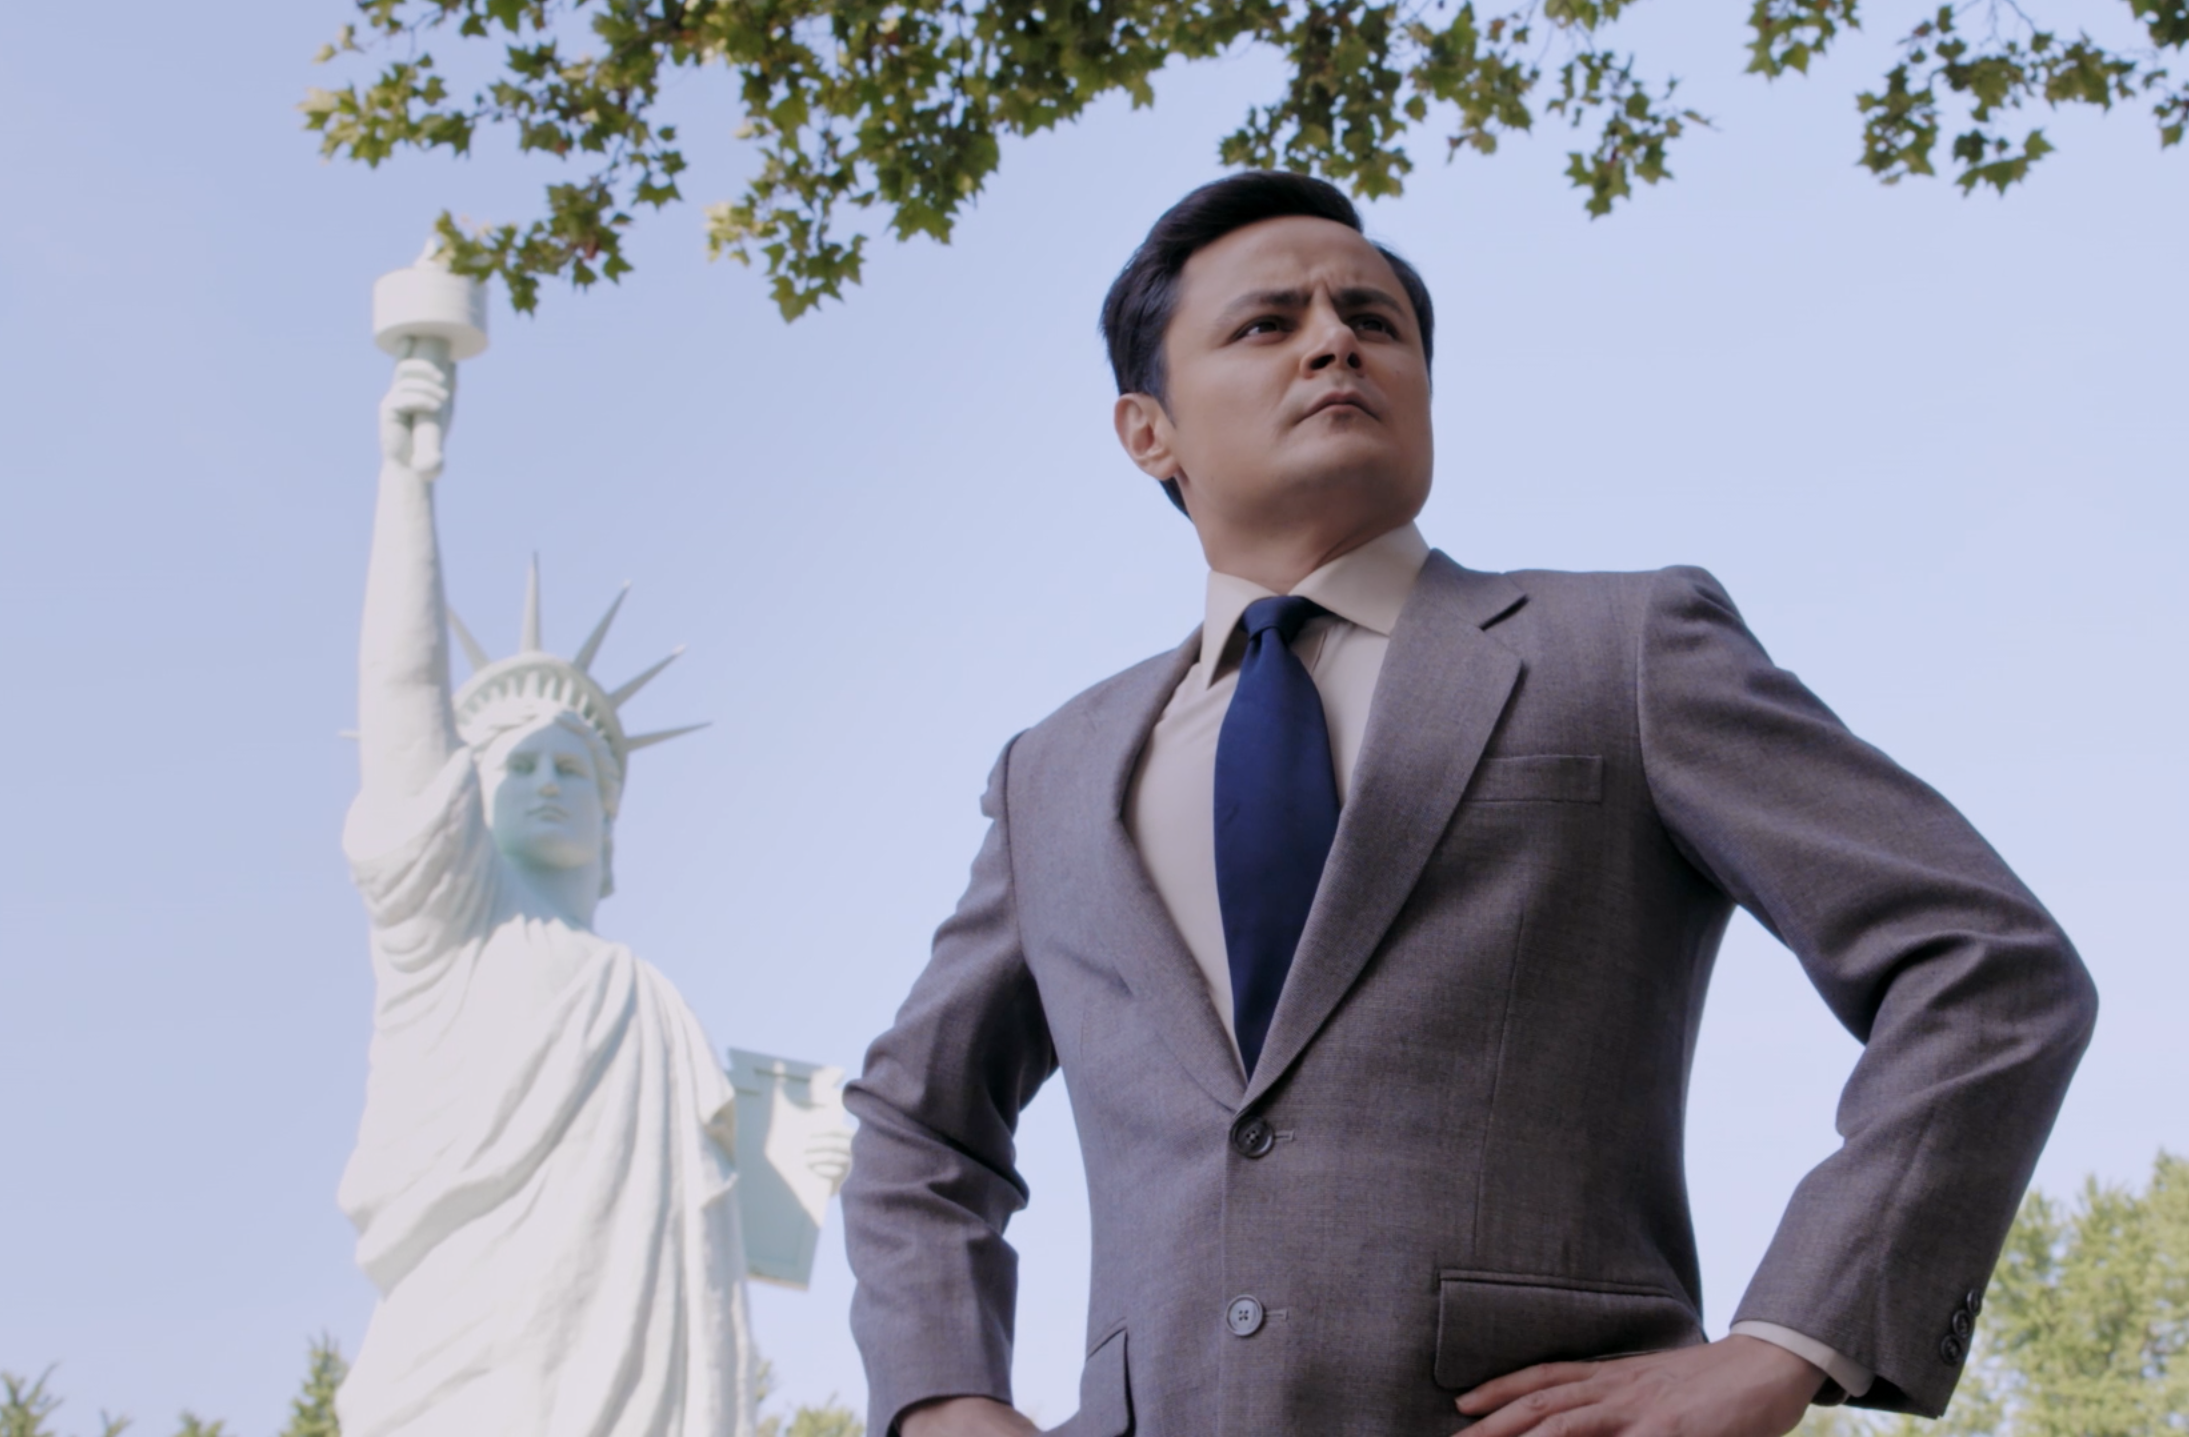 Arturo Castro's Comedy Web Series 'Alternatino' is Back for a Weirder, Darker Second Season